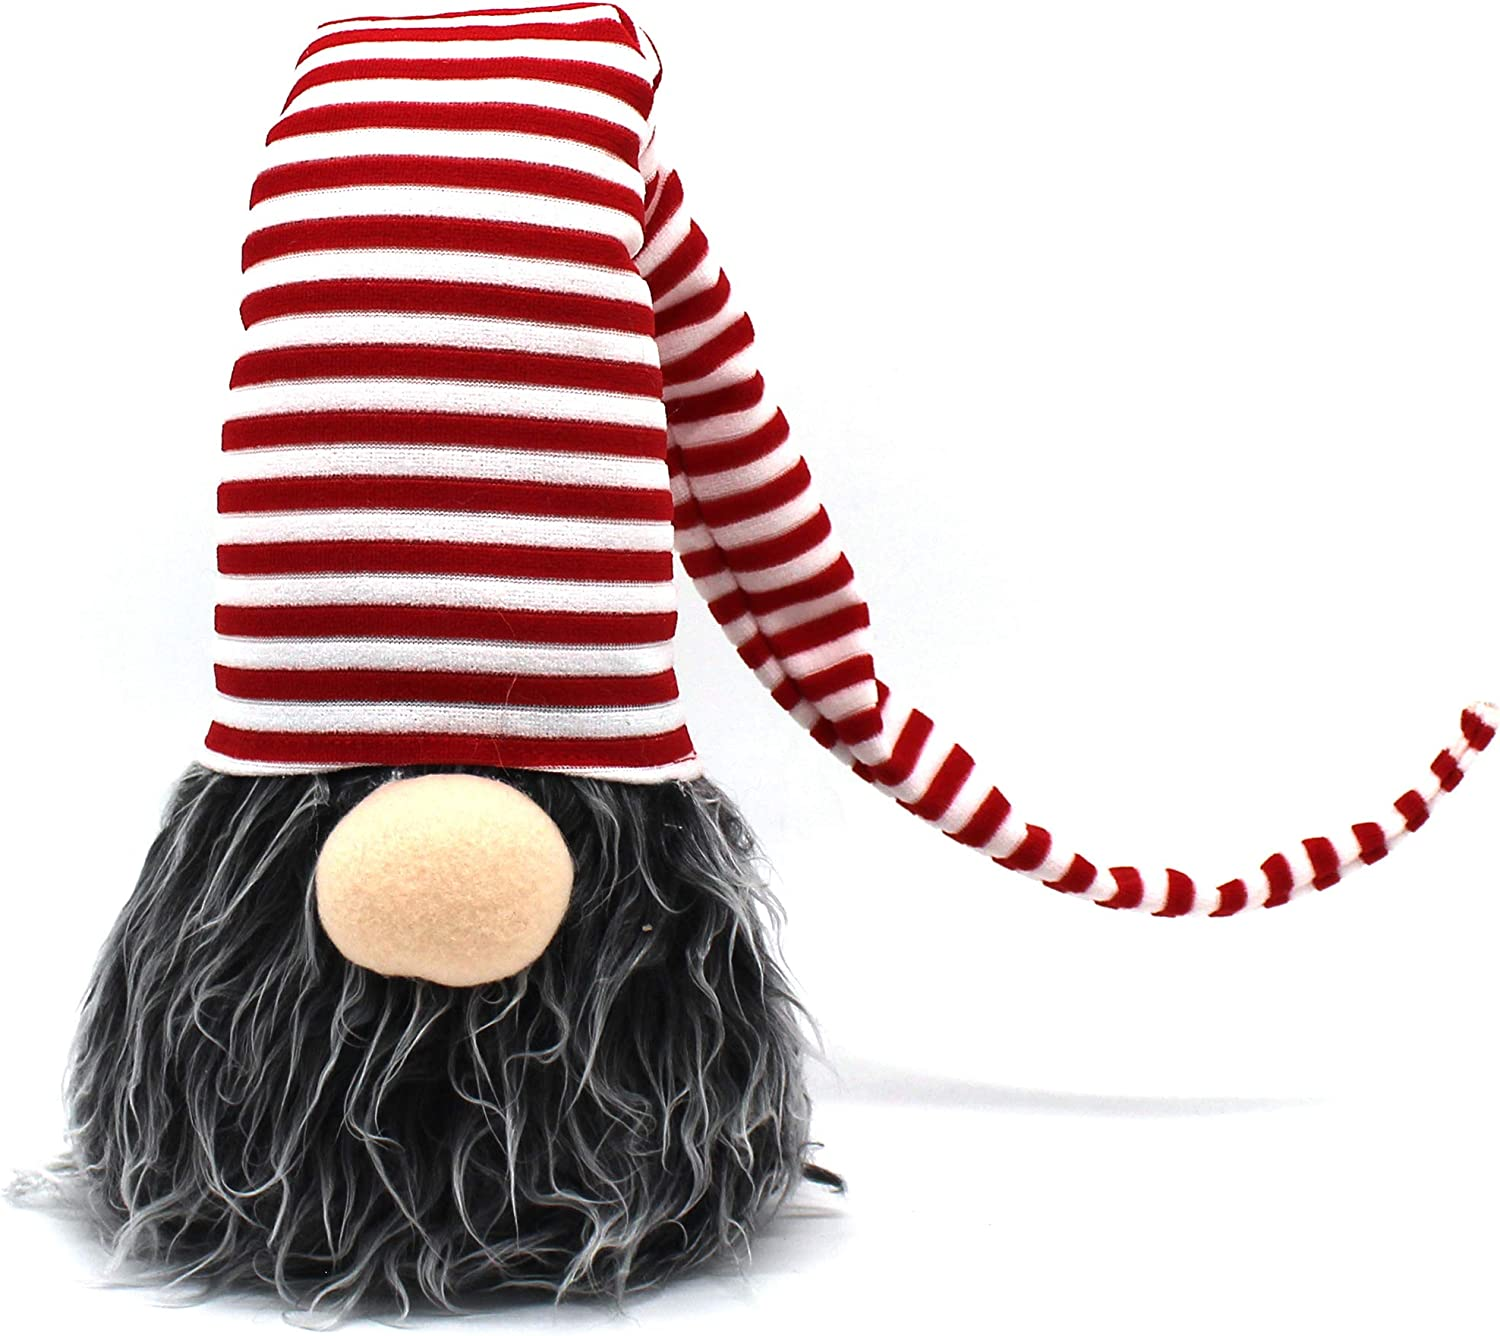 CVHOMEDECO. Handmade Swedish Gnome Plush Figurines Swedish Tomte for Home Décor, Winter Ornaments, Christmas and Holiday Party Decorations, 26 Inches, Stripe Hat